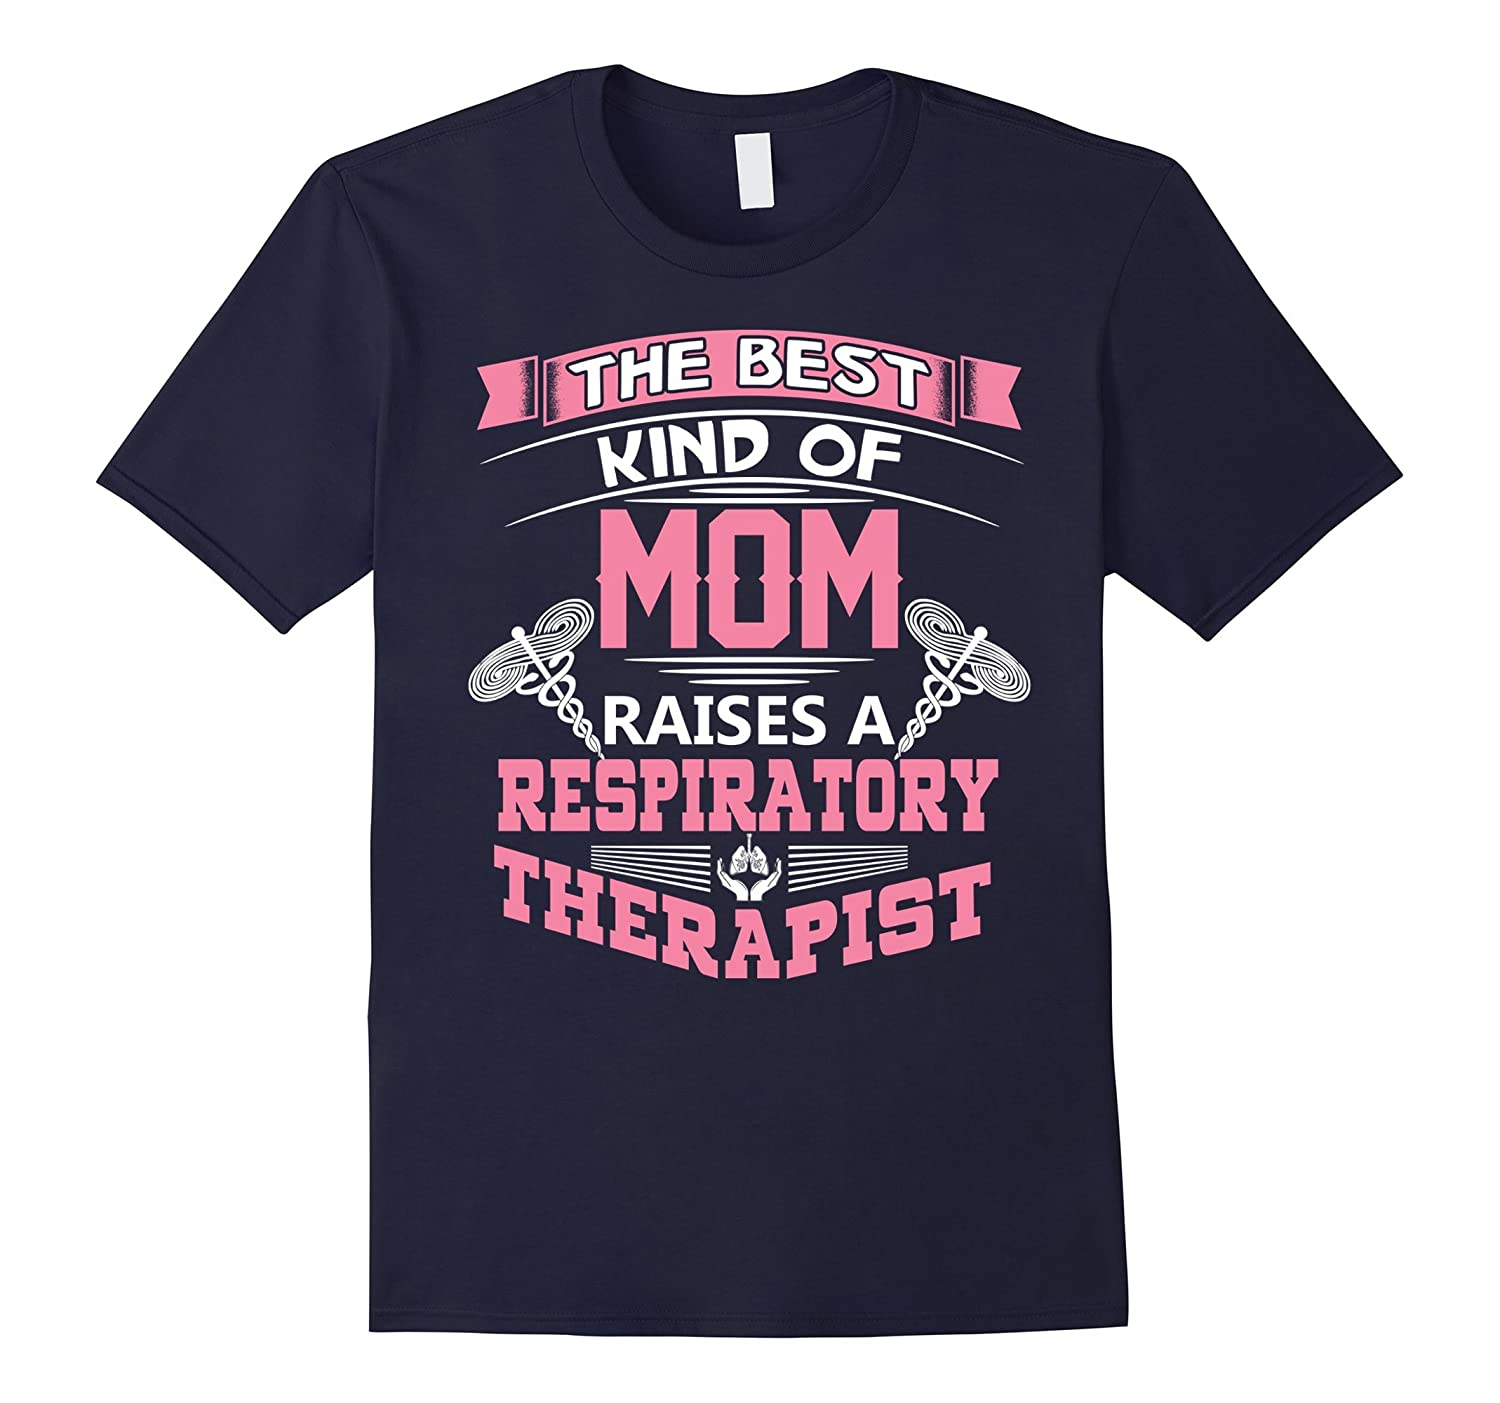 The Best Kind Of Mom Raises A Respiratory Therapist-Vaci